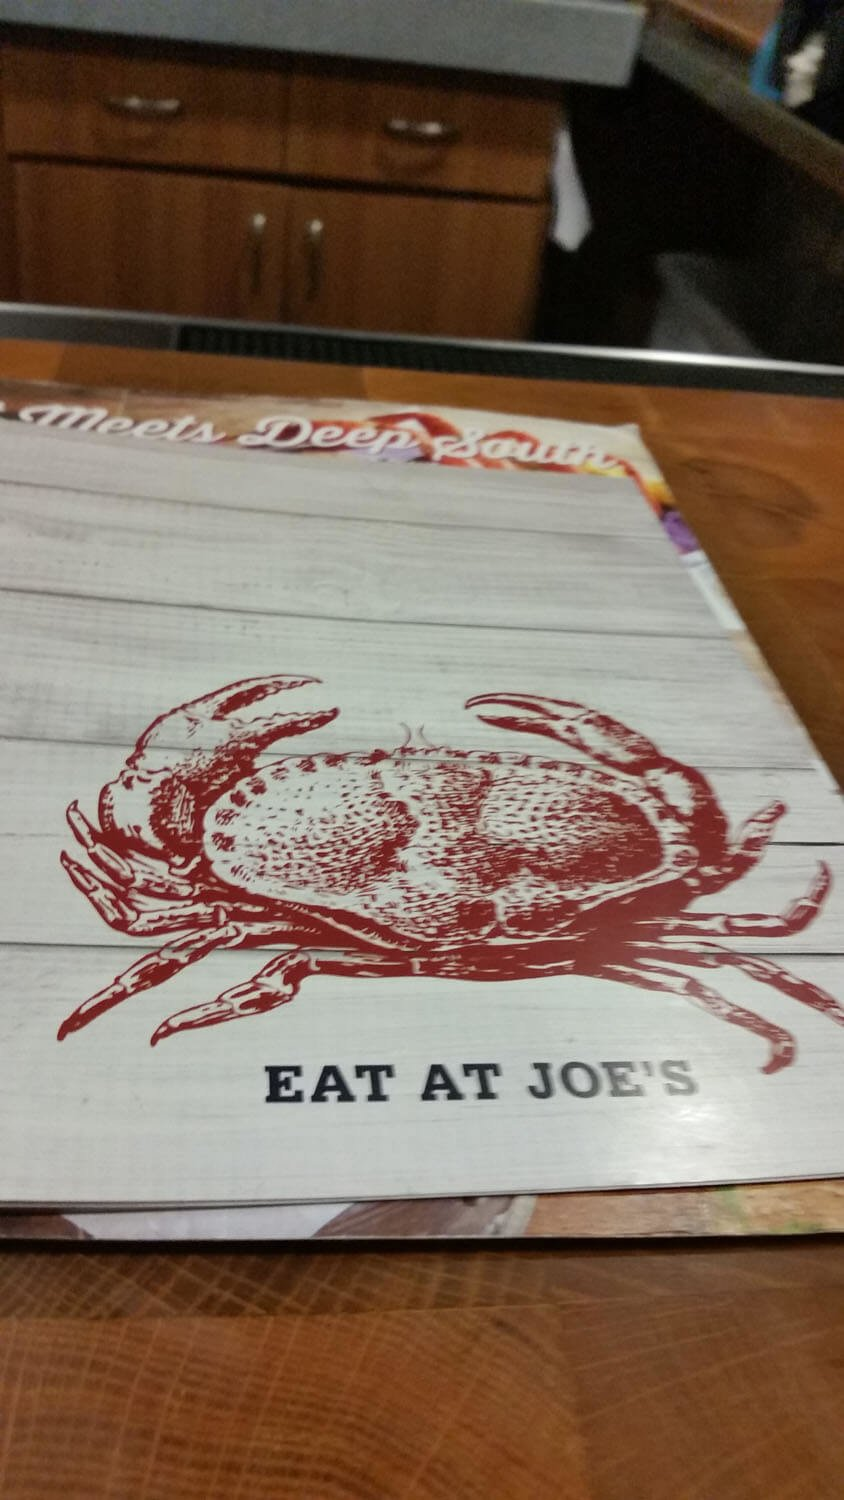 Joe's Crab Shack Menu – 30